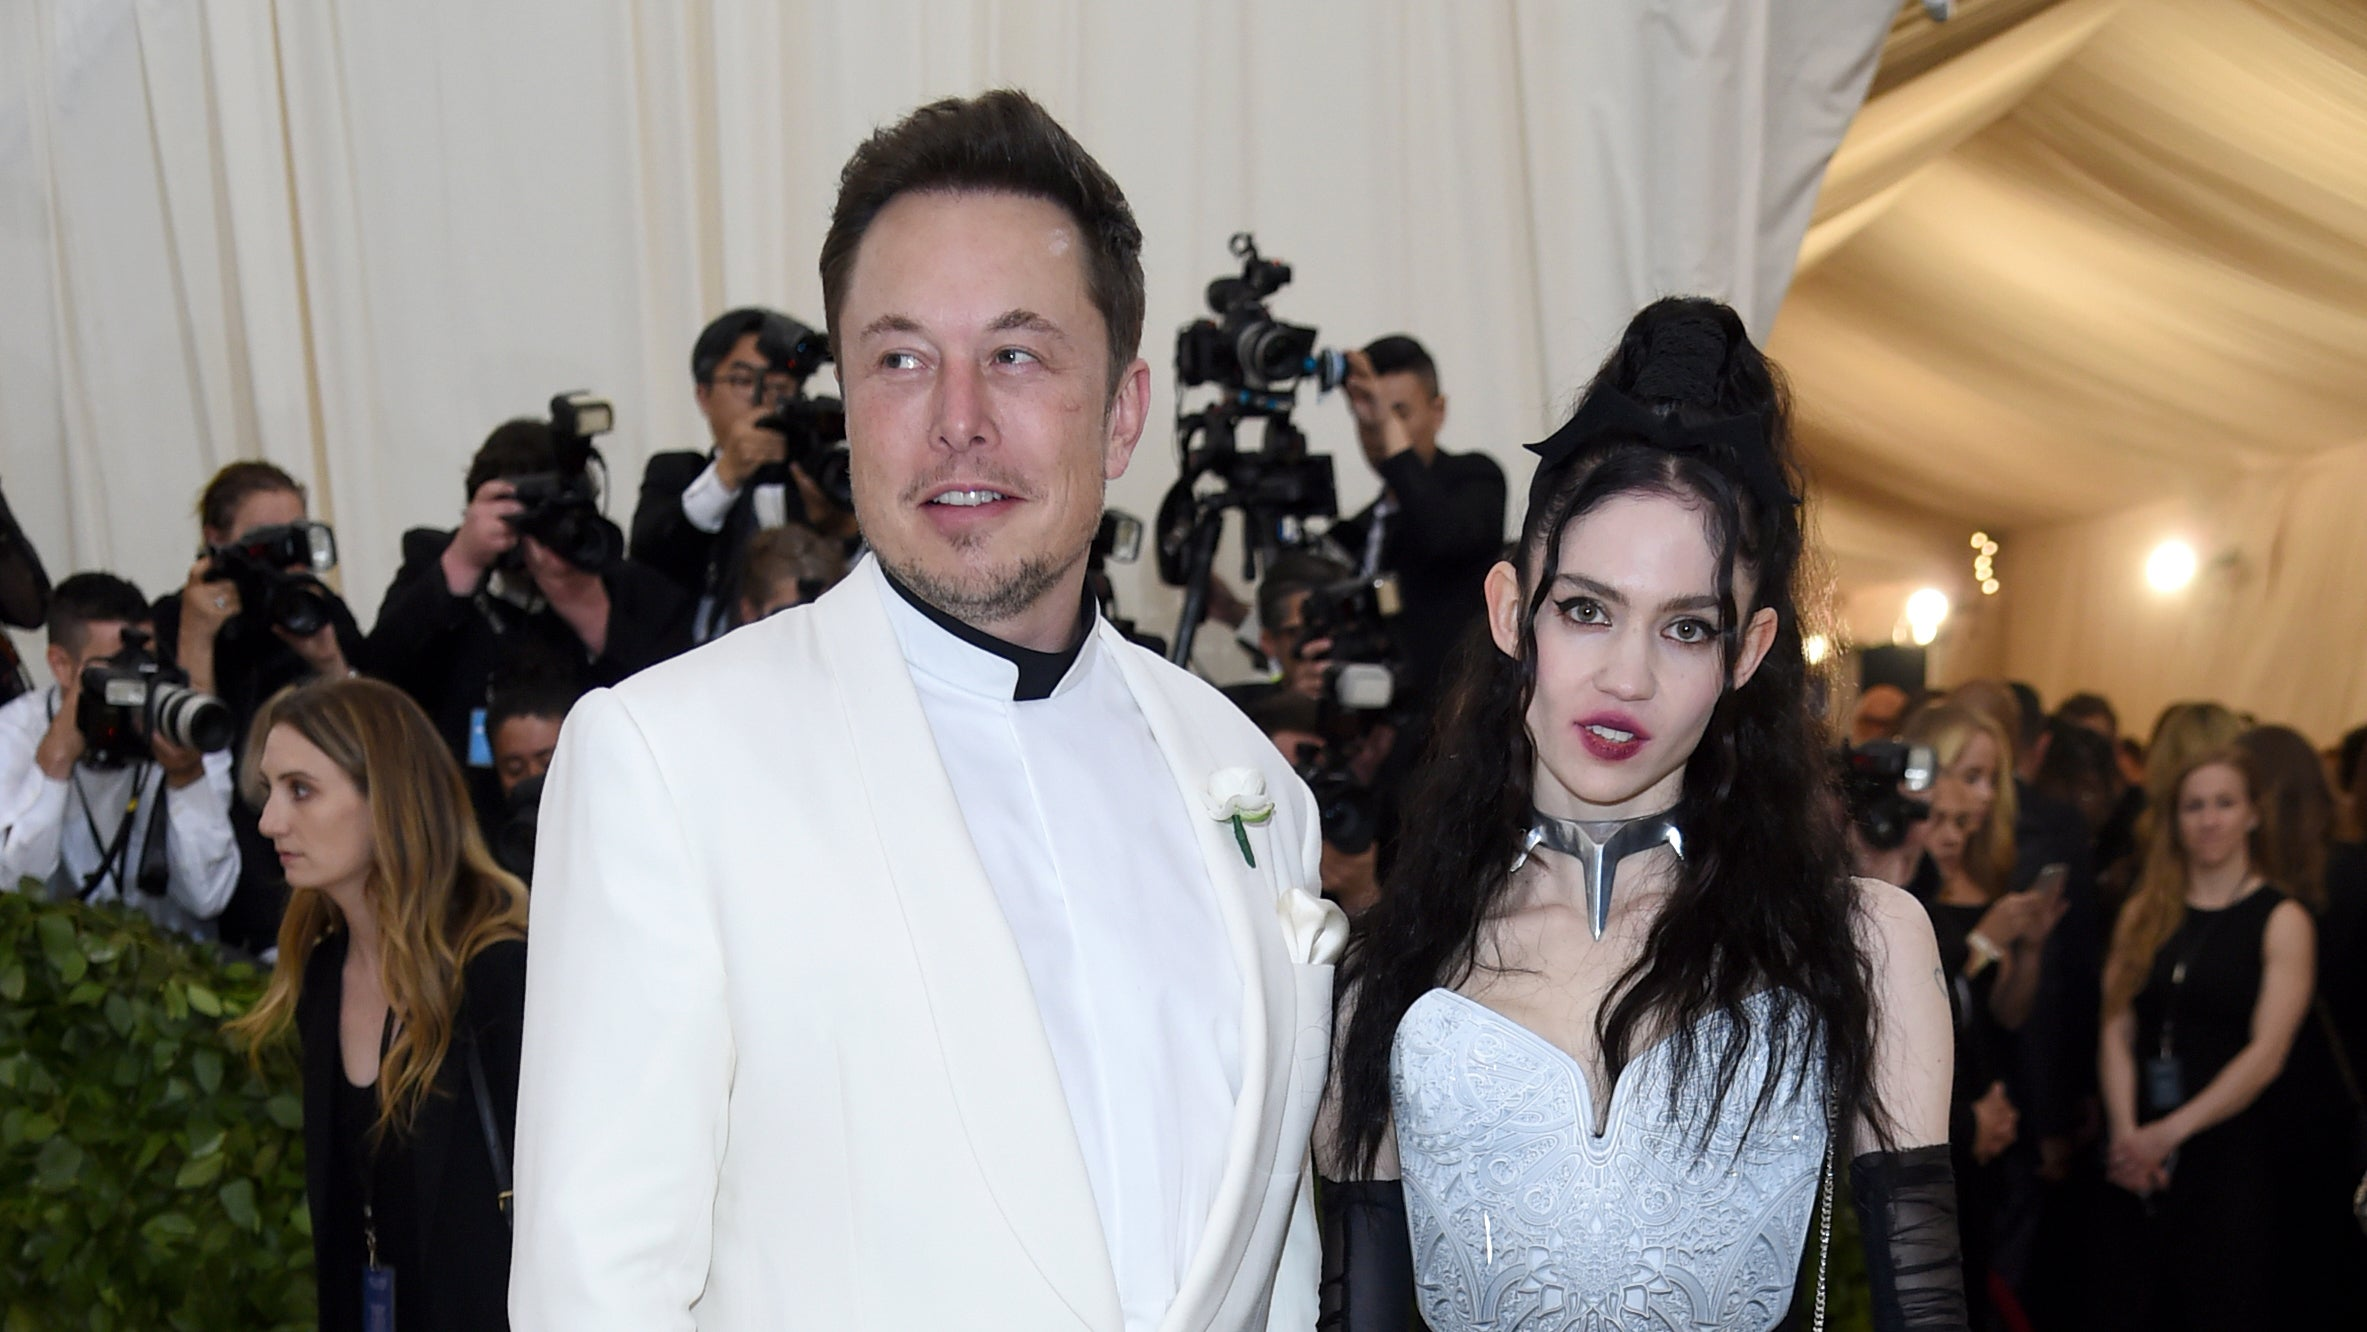 I Had No Idea Who Grimes Is, But After 20 Minutes Of Misinformed Research, Reports She's Dating Elon Musk Make Sense